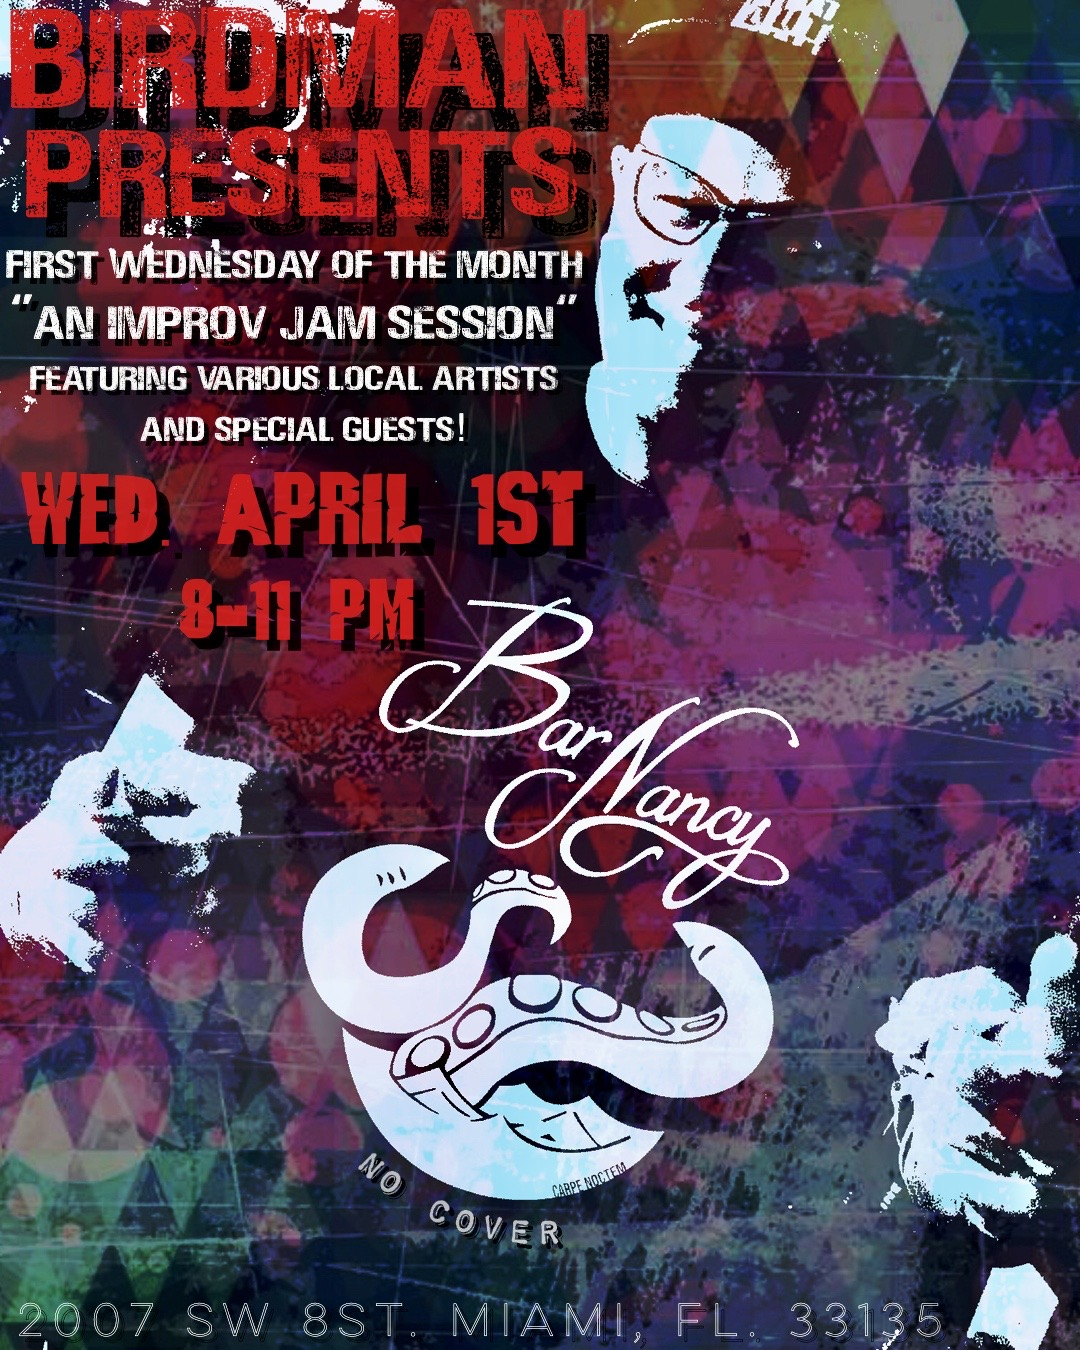 Birdman Presents! Jam with the Clam! 1st Wednesday's! at Bar Nancy